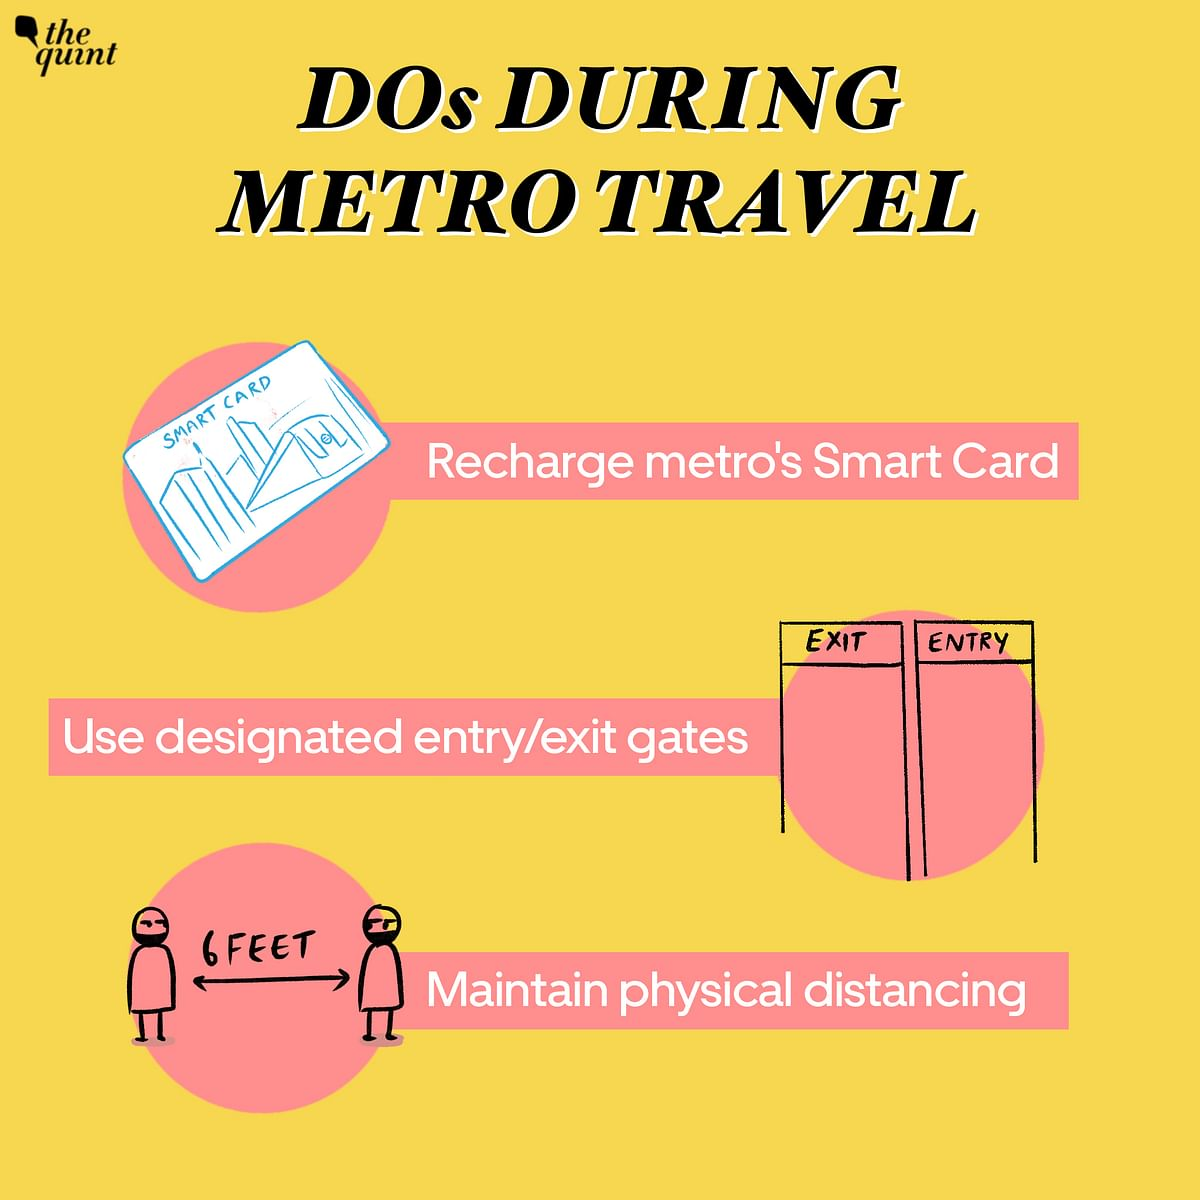 Wear Face Mask, Don't Skip Lines: Dos & Don'ts During Metro Travel